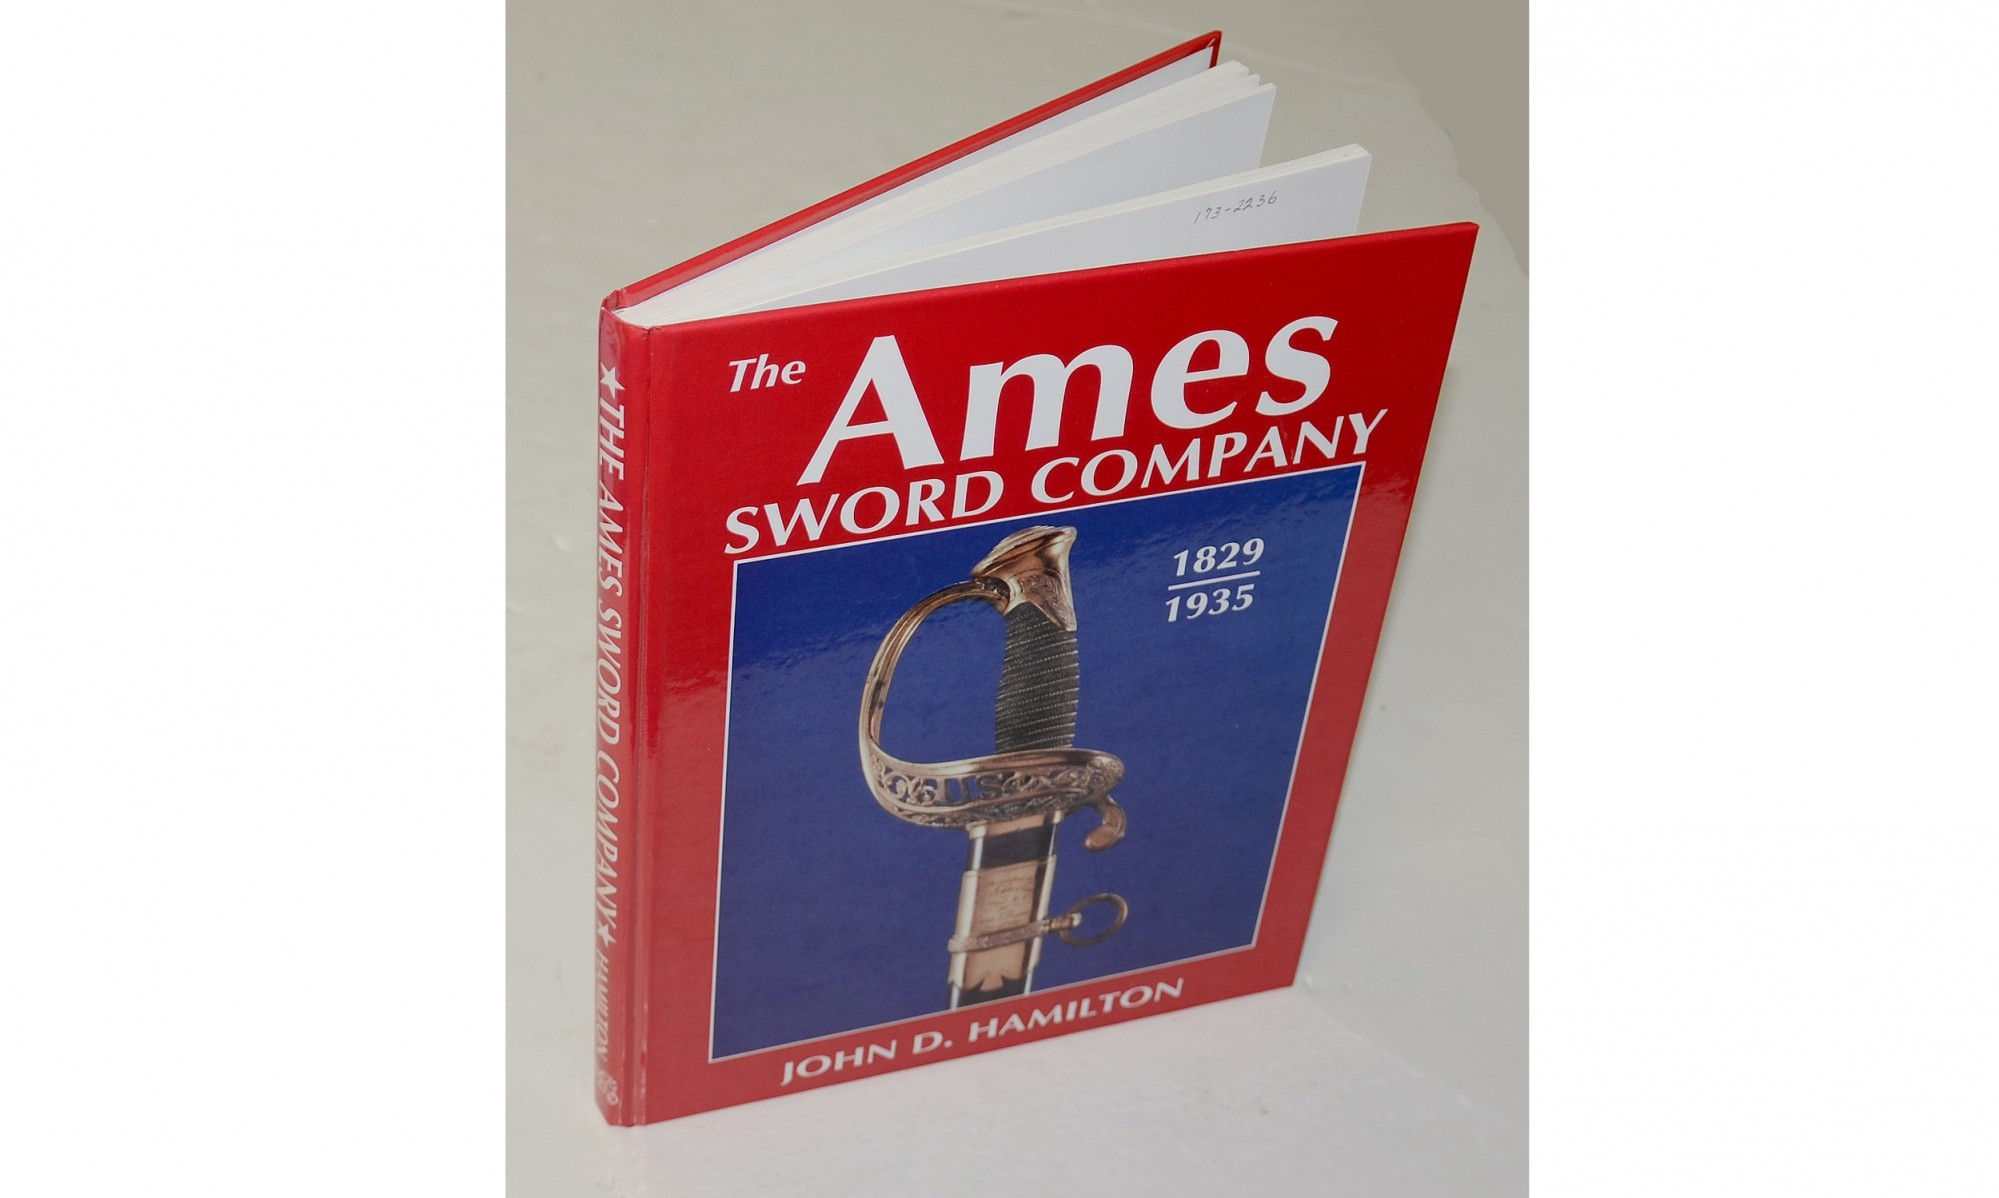 <i>THE AMES SWORD COMPANY 1829-1835</I> BY JOHN D. HAMILTON